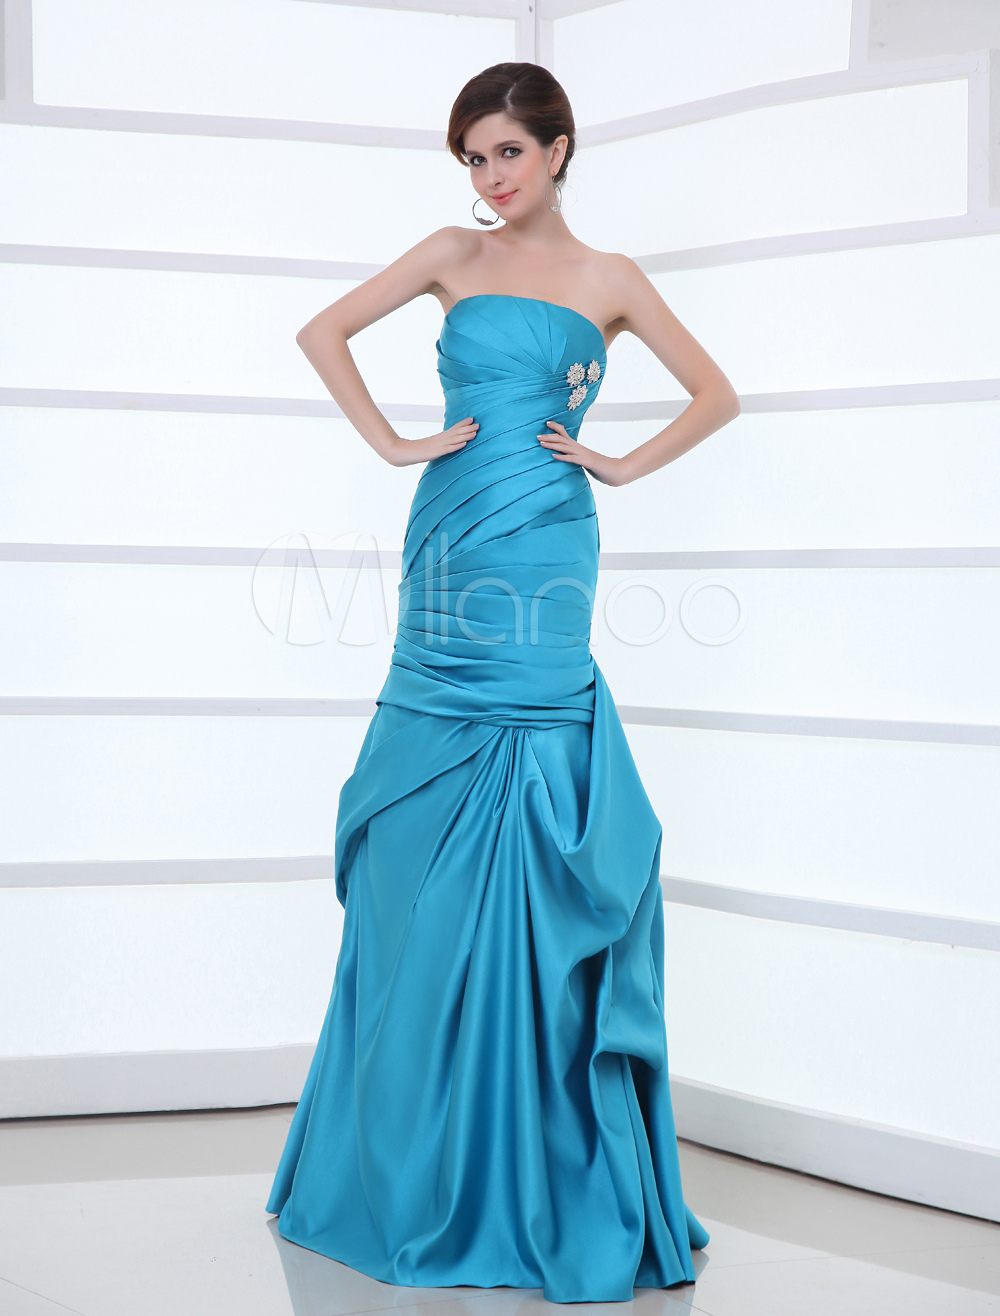 Mermaid Evening Dress Satin Strapless Ruched Formal Dress Draped Rhinestones Beaded Floor Length Occasion Dress